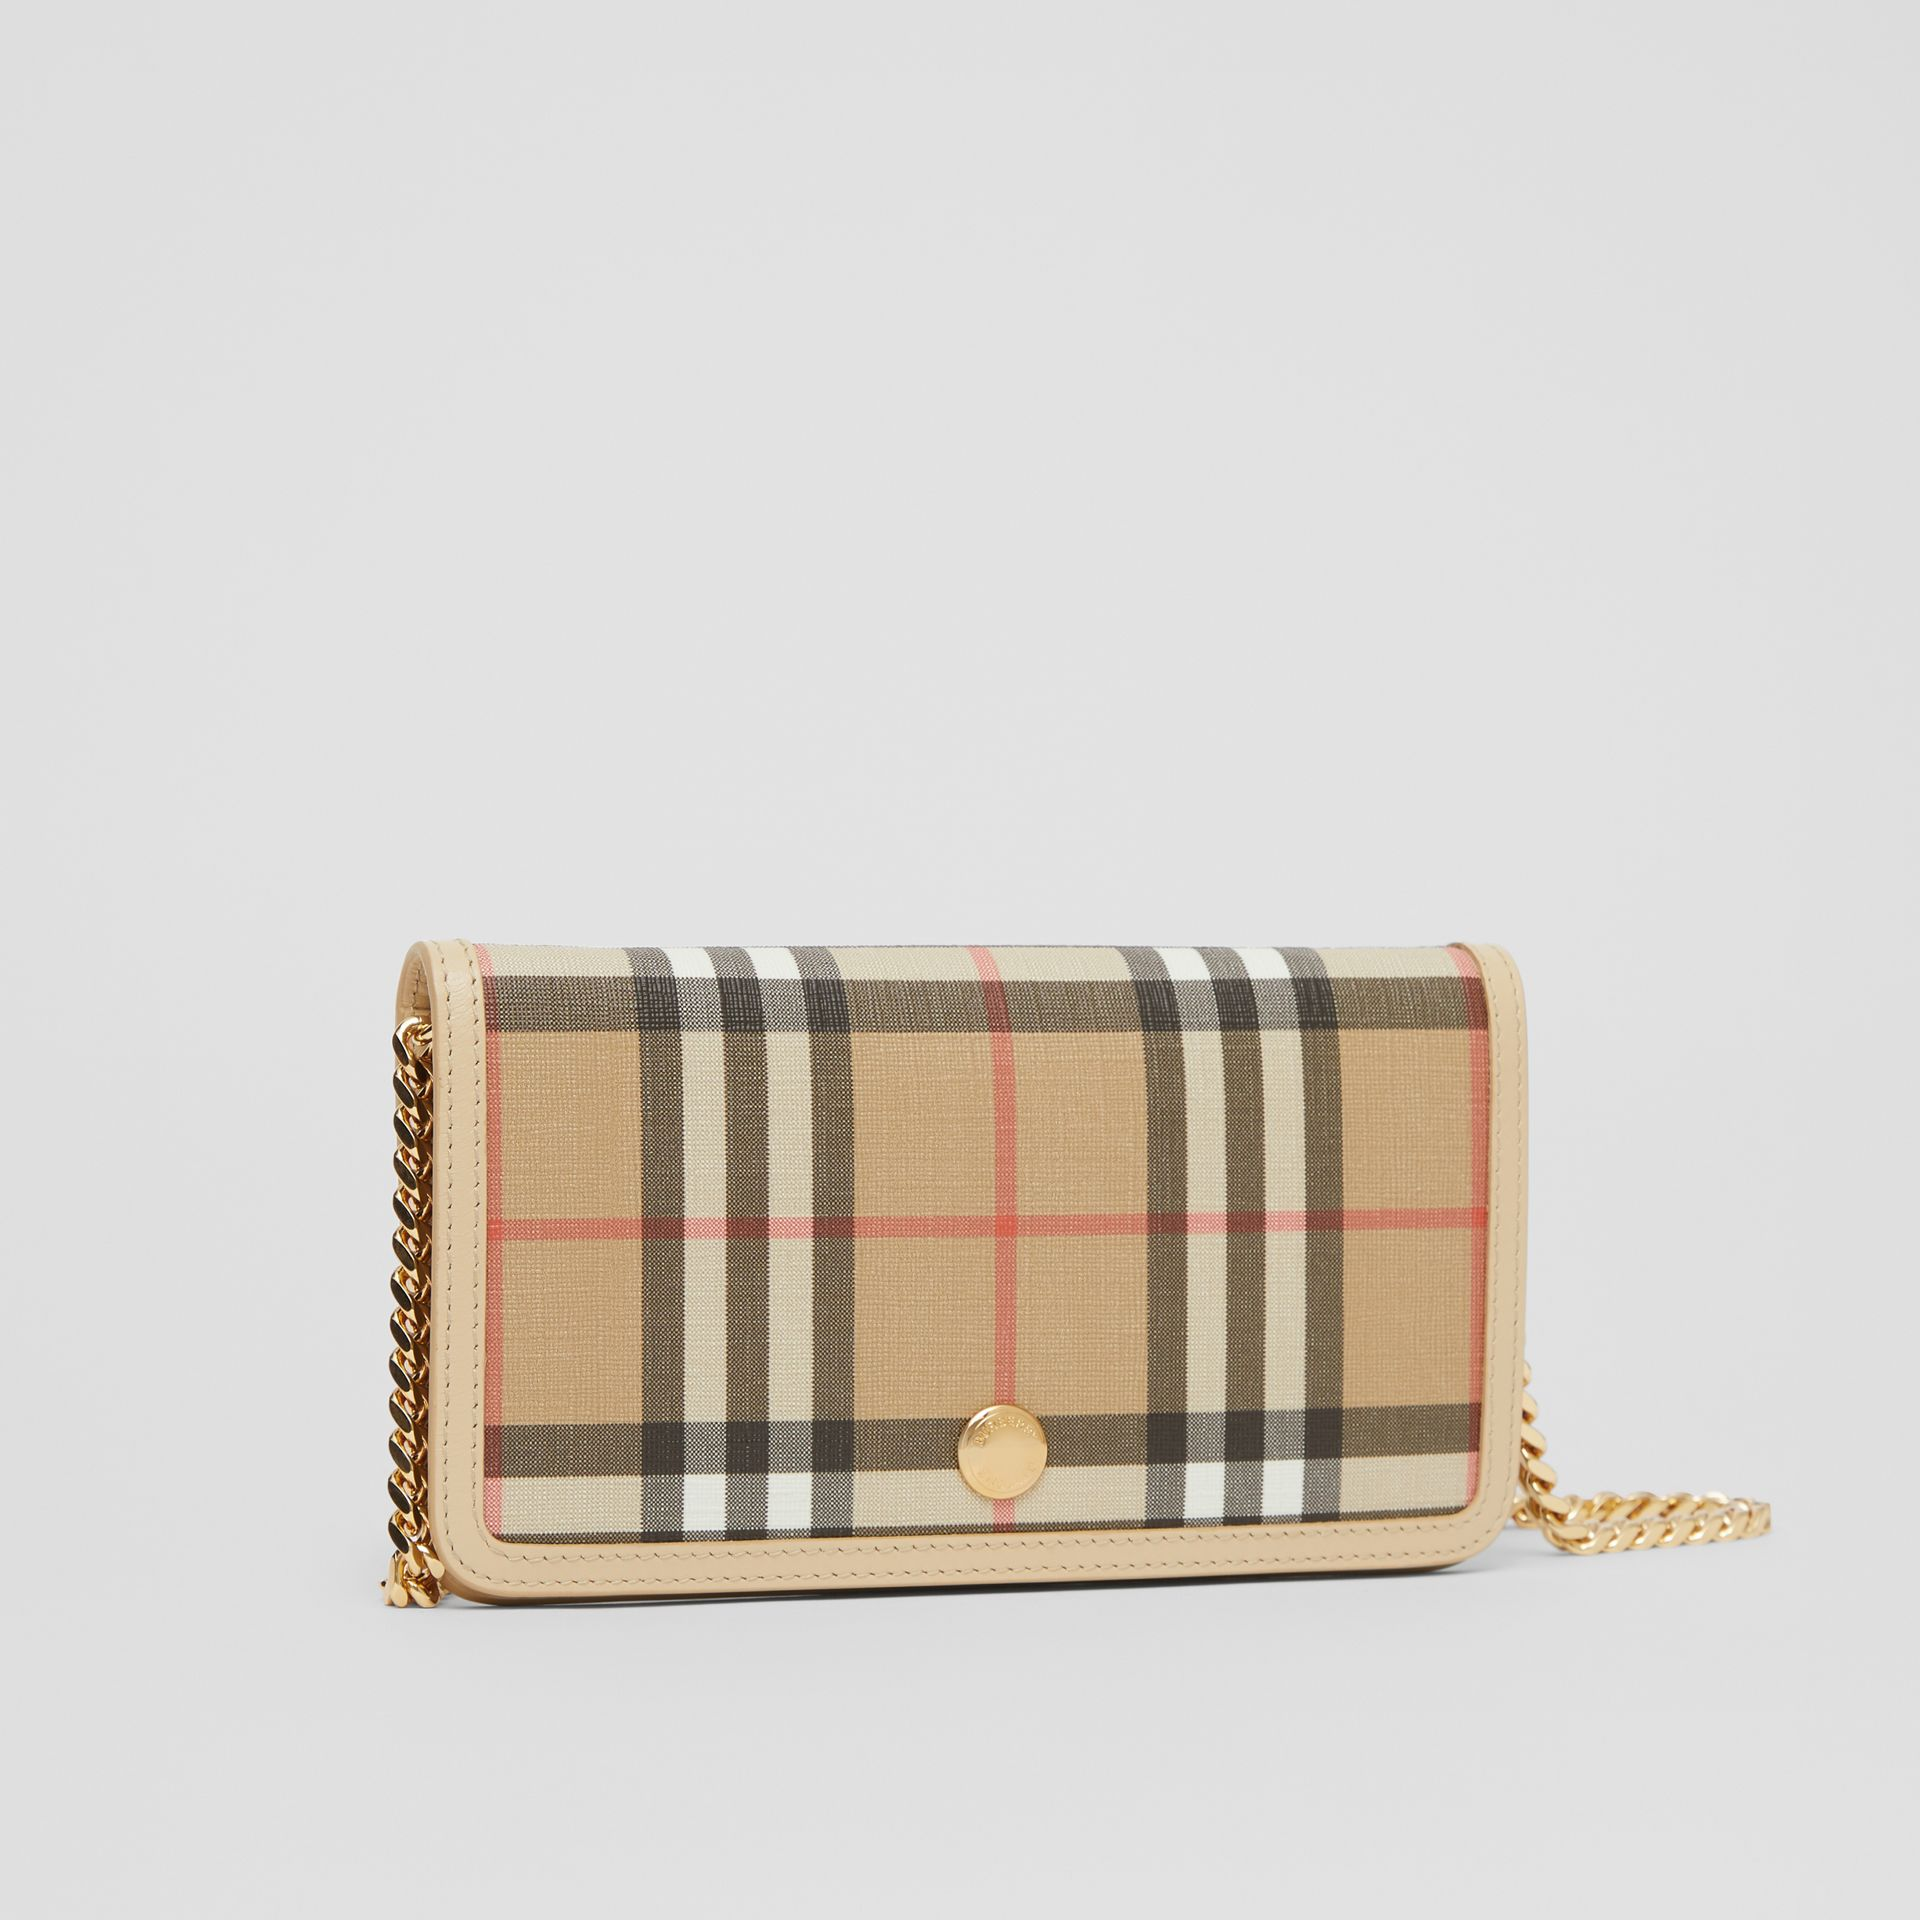 Vintage Check E-canvas Phone Wallet with Strap in Beige - Women | Burberry Singapore - gallery image 4